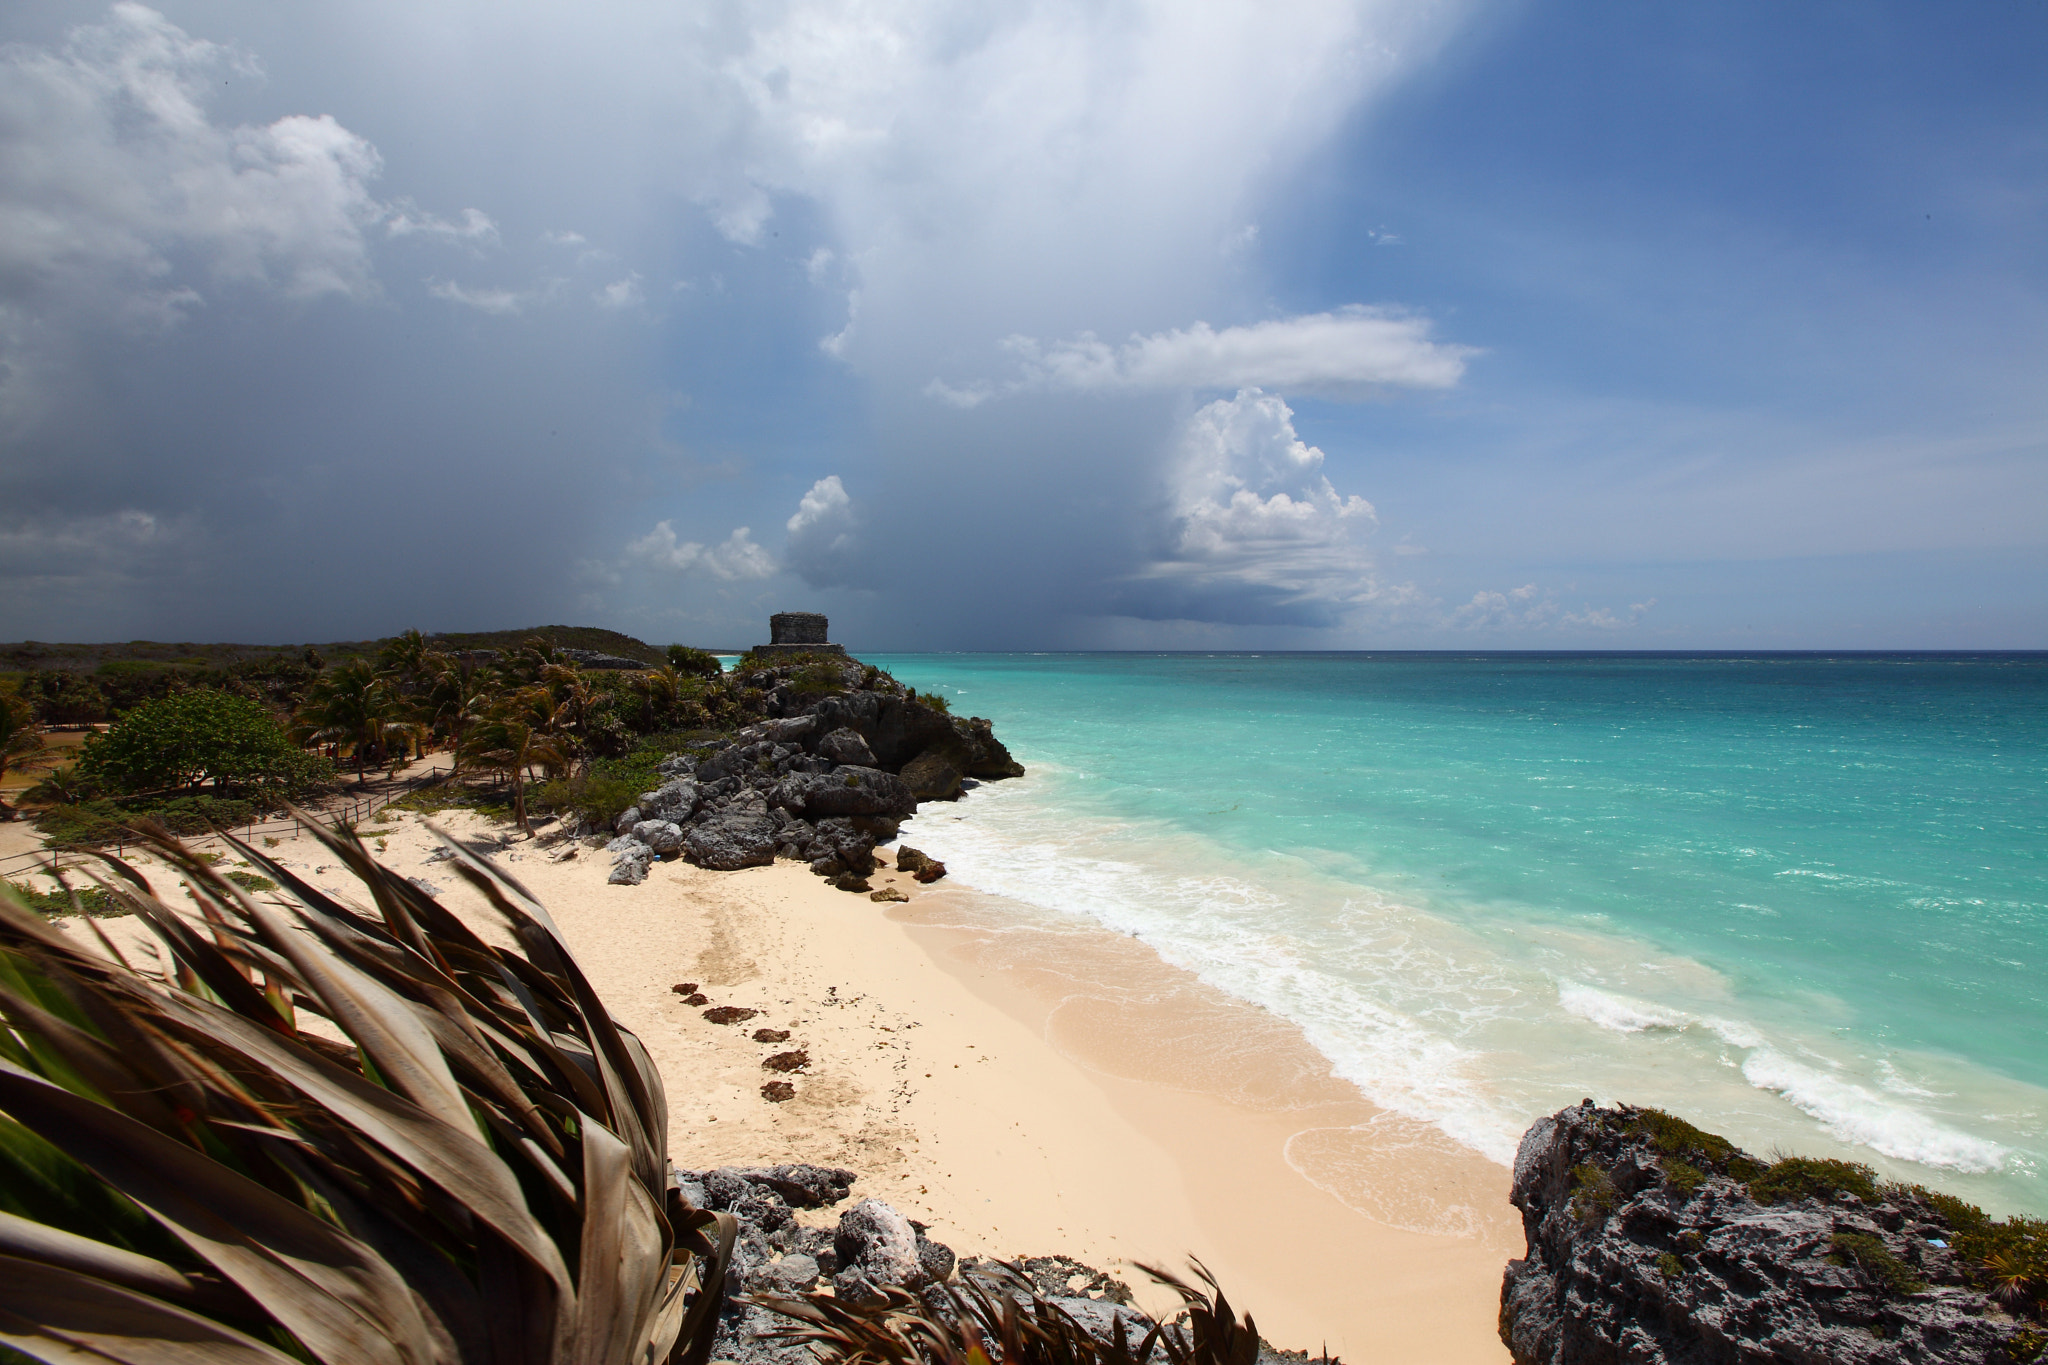 Photograph Tulum, Mexico by Yana Bukharova on 500px